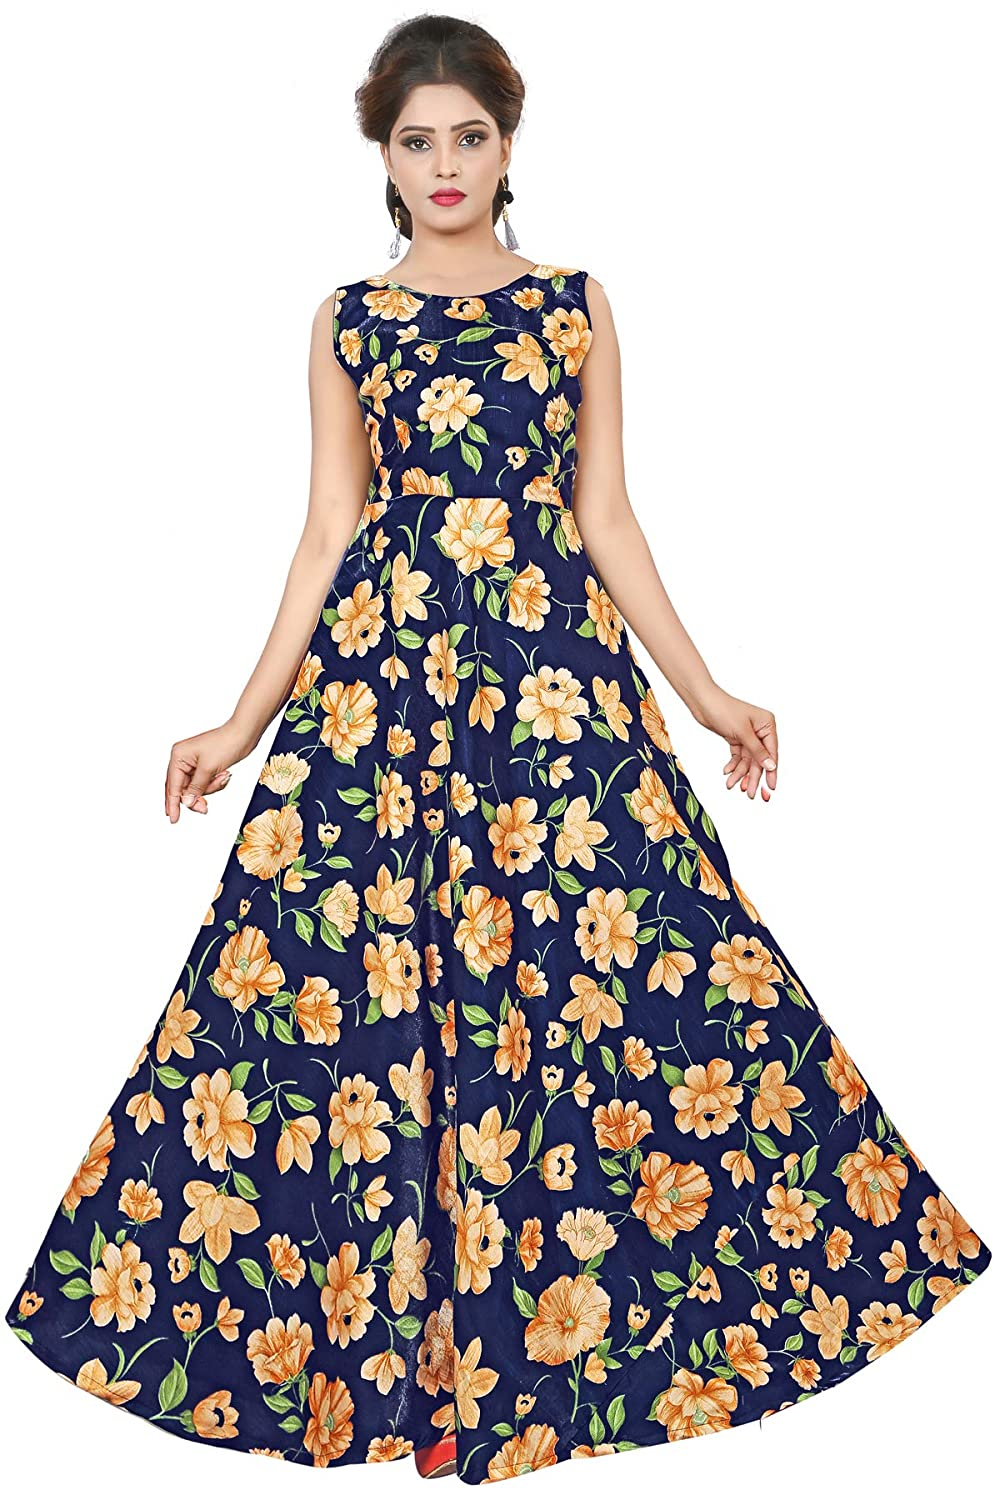 8e05f1c707 Clothfab Women s Cotton Digital Printed Anarkali Long Gown (Blue)   Amazon.in  Clothing   Accessories